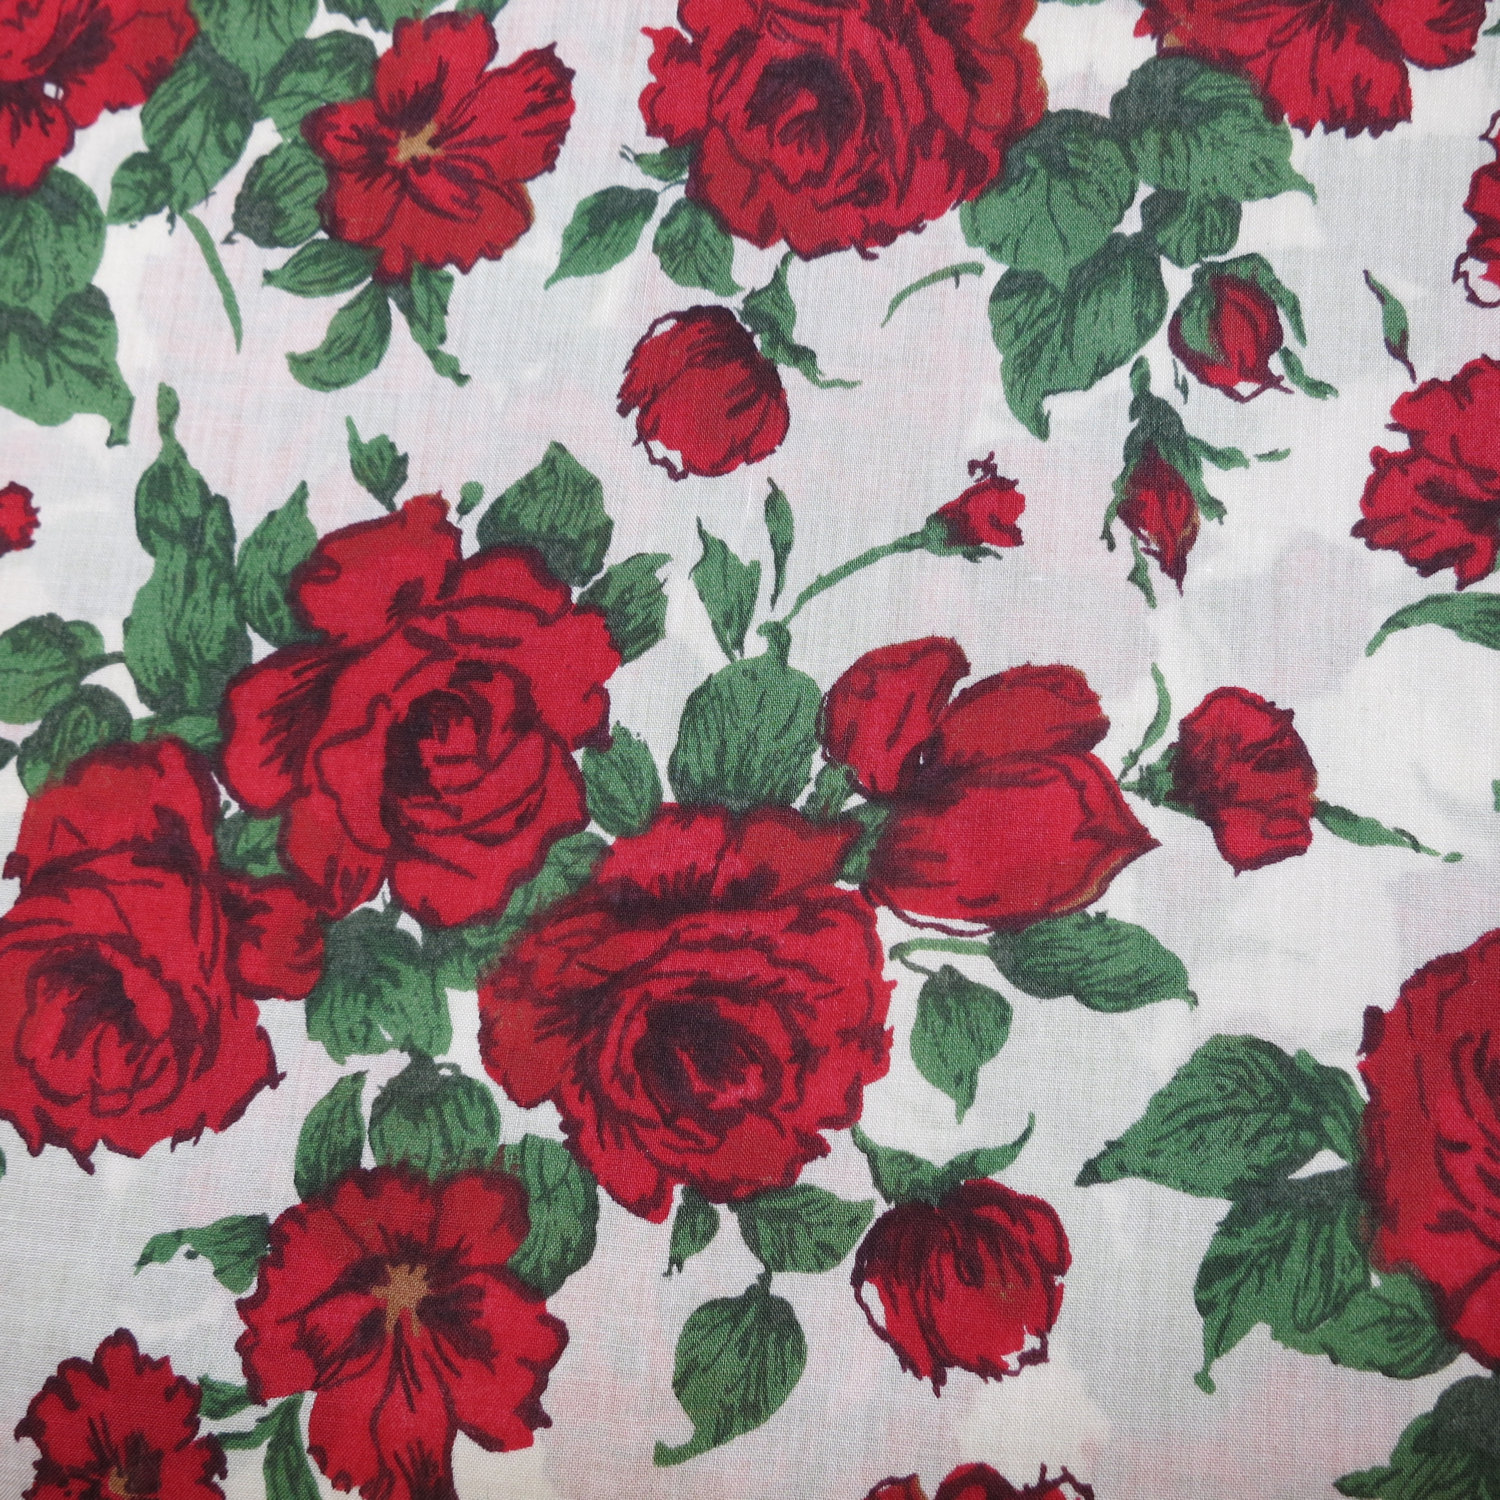 Red Rose Print Fabric